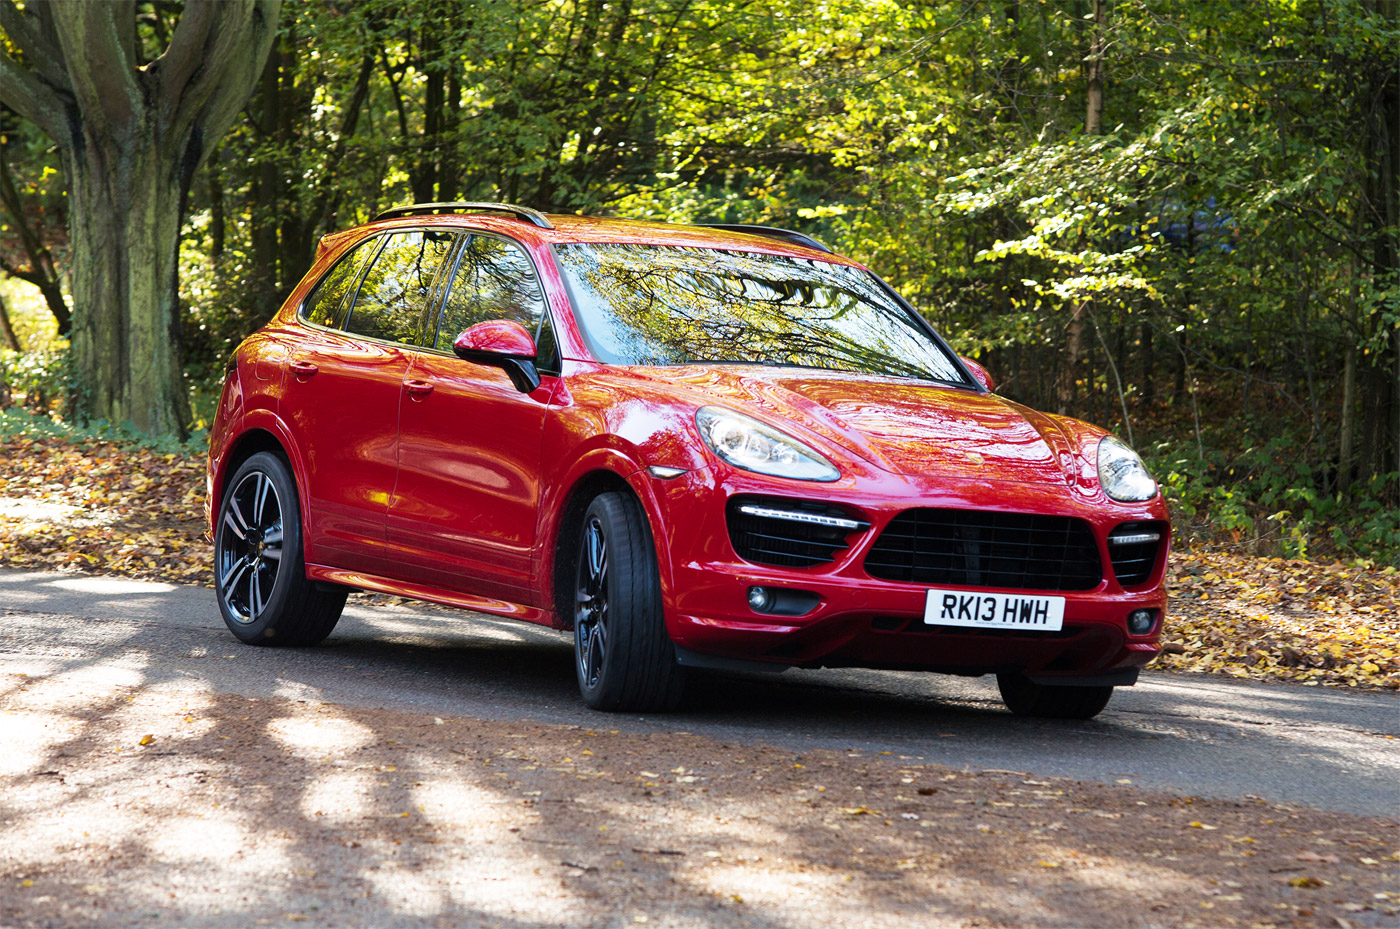 Part Two Of The Luxurious Magazine Road Test Of The Porsche Cayenne Turbo S